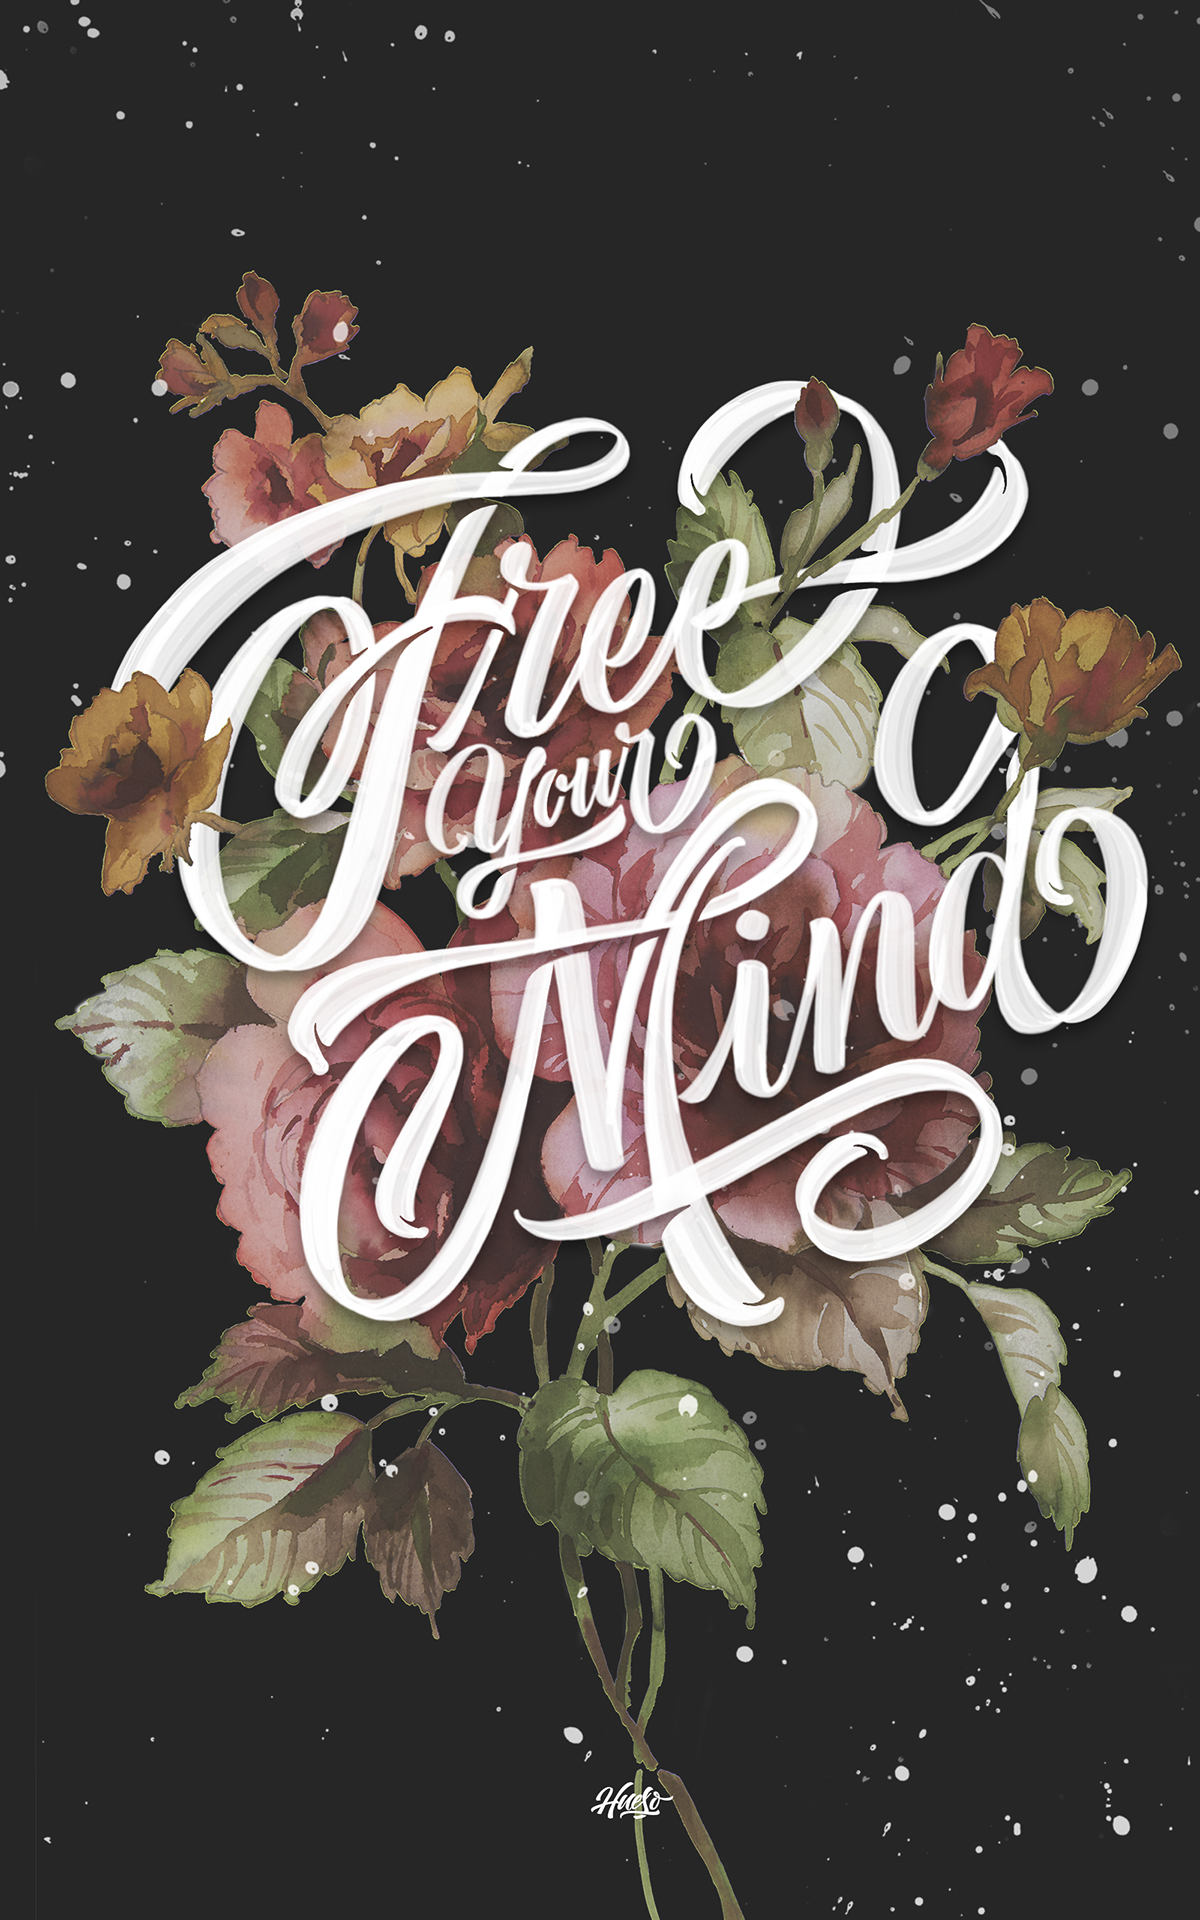 Free-Your-Mind-by-Rafa-Miguel-lettering-calligraphy-More-wallpaper-wp5206794